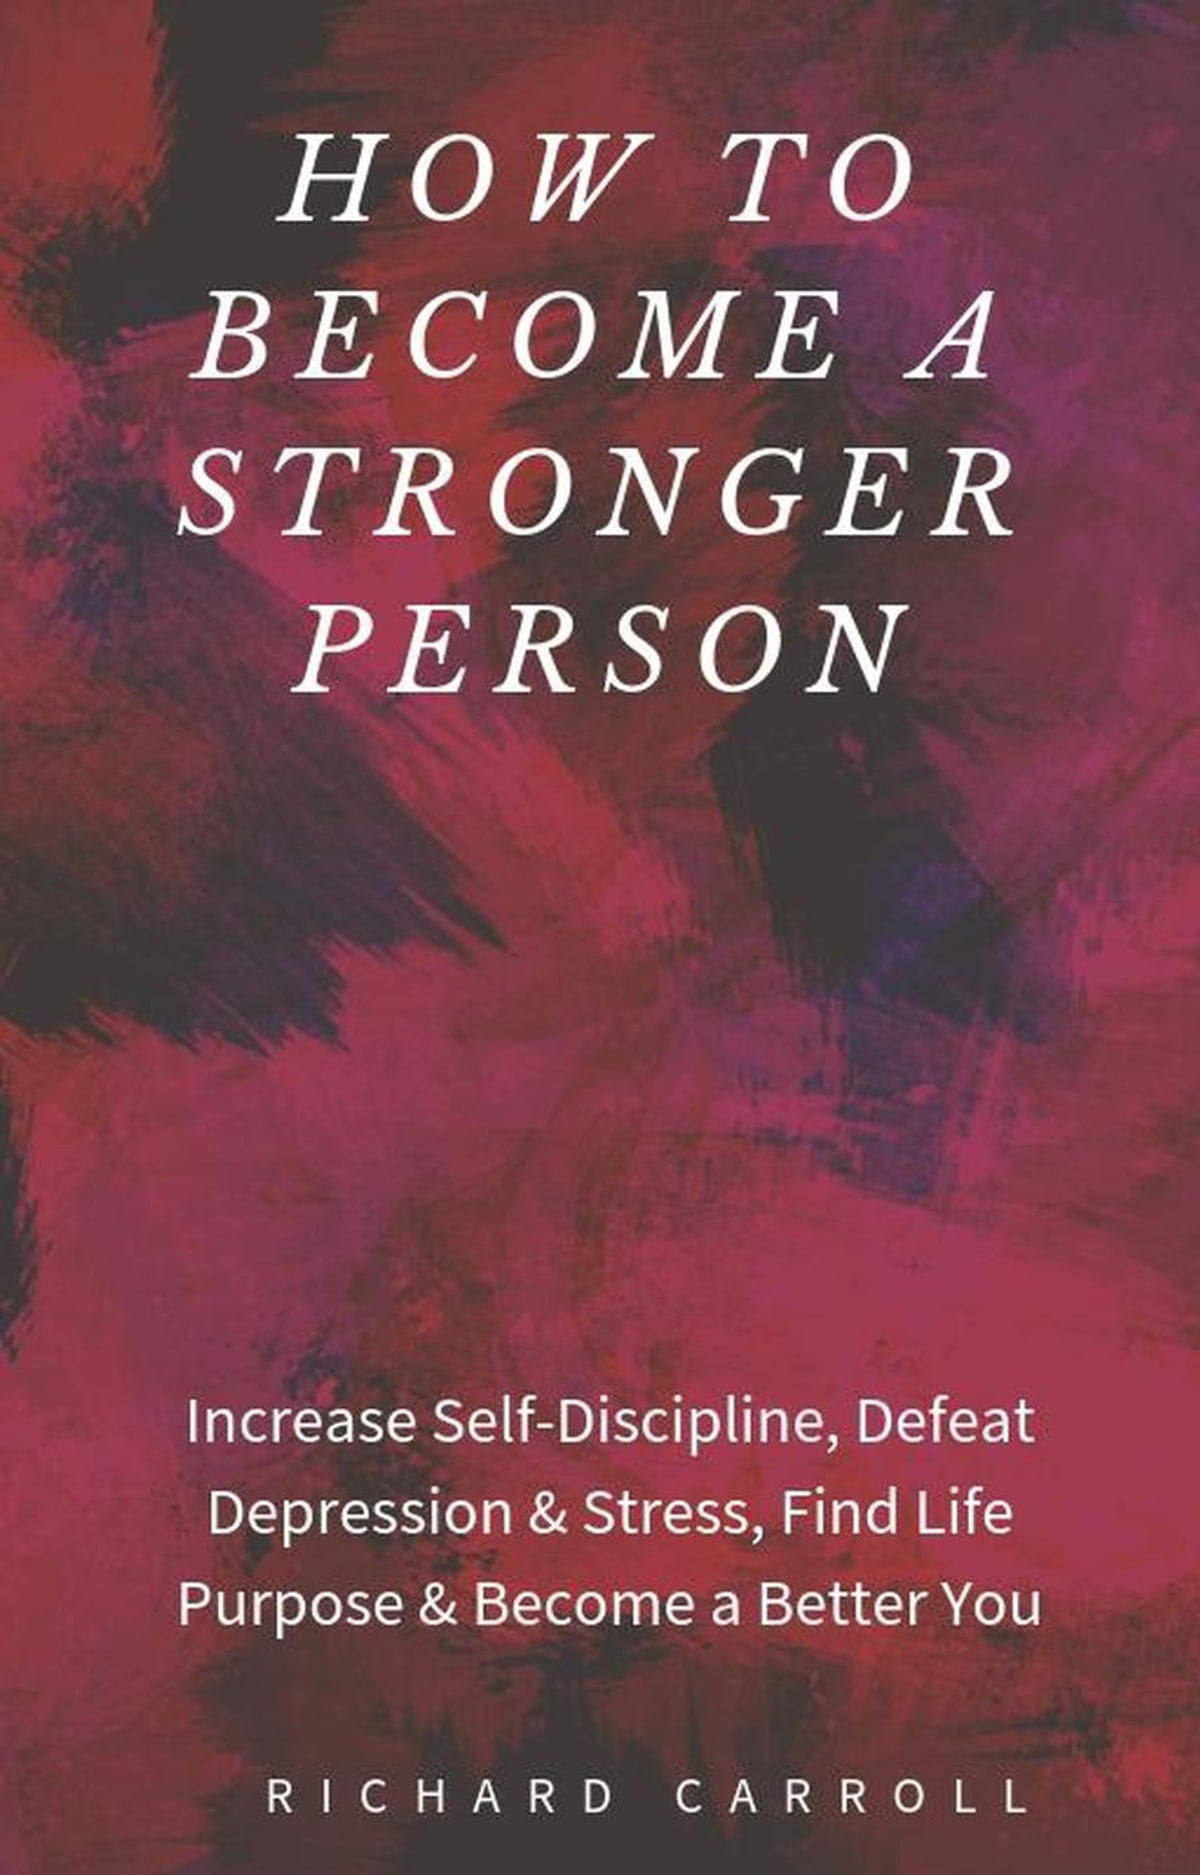 How to Become a Stronger Person Through Caregiving